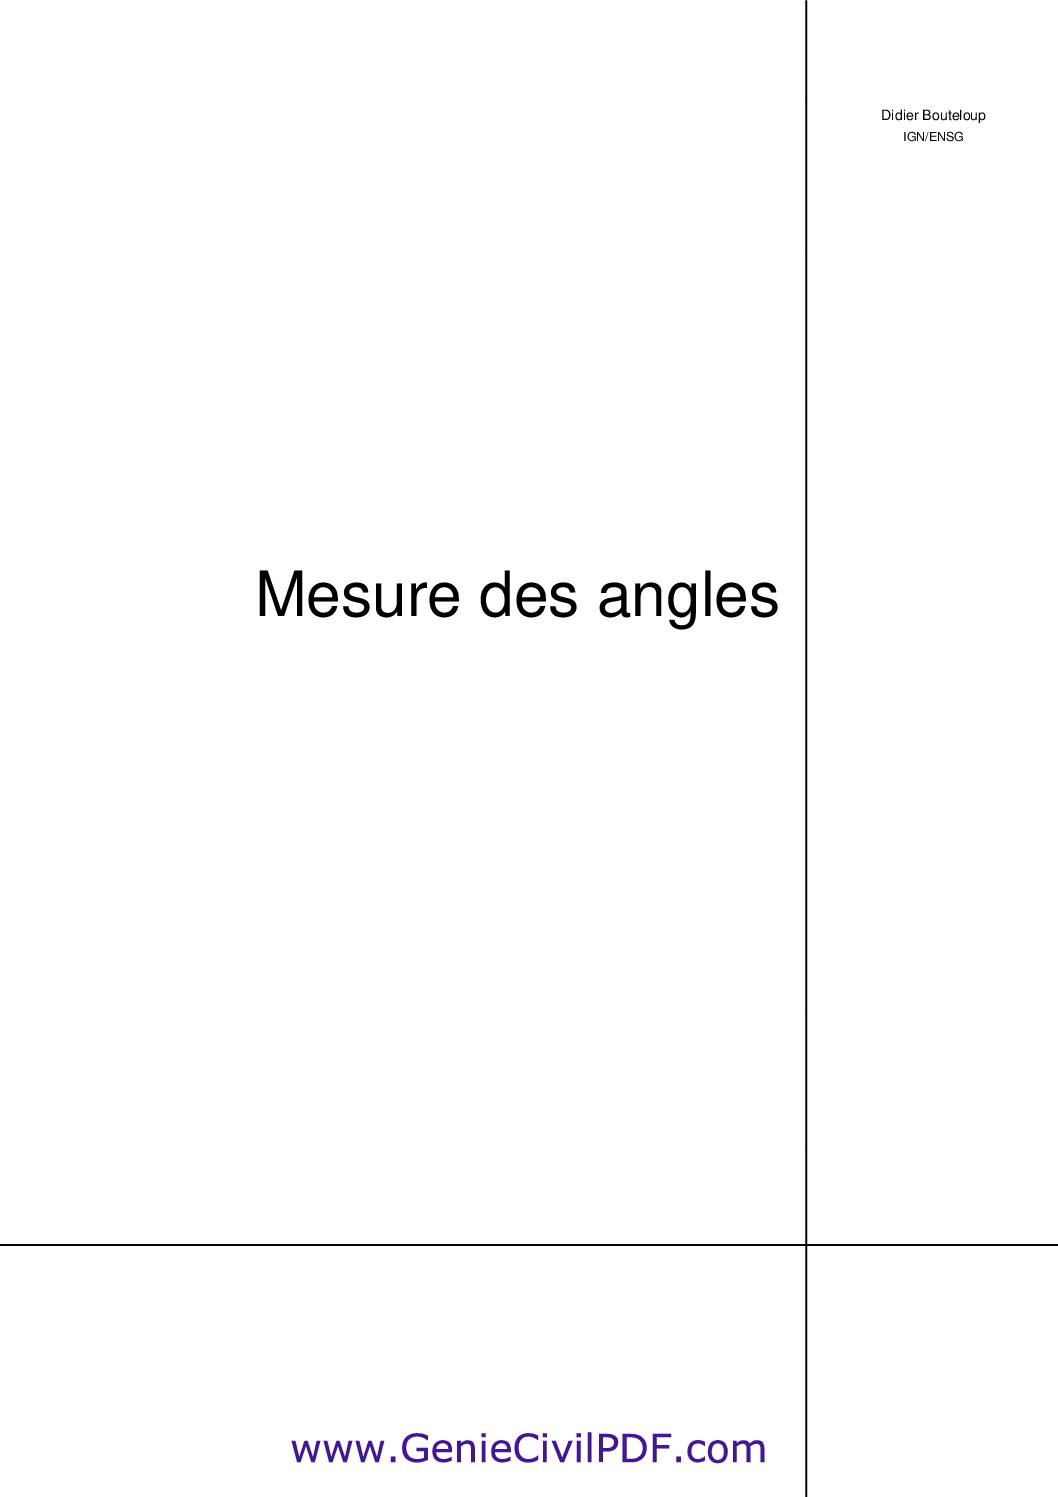 Mesure des angles